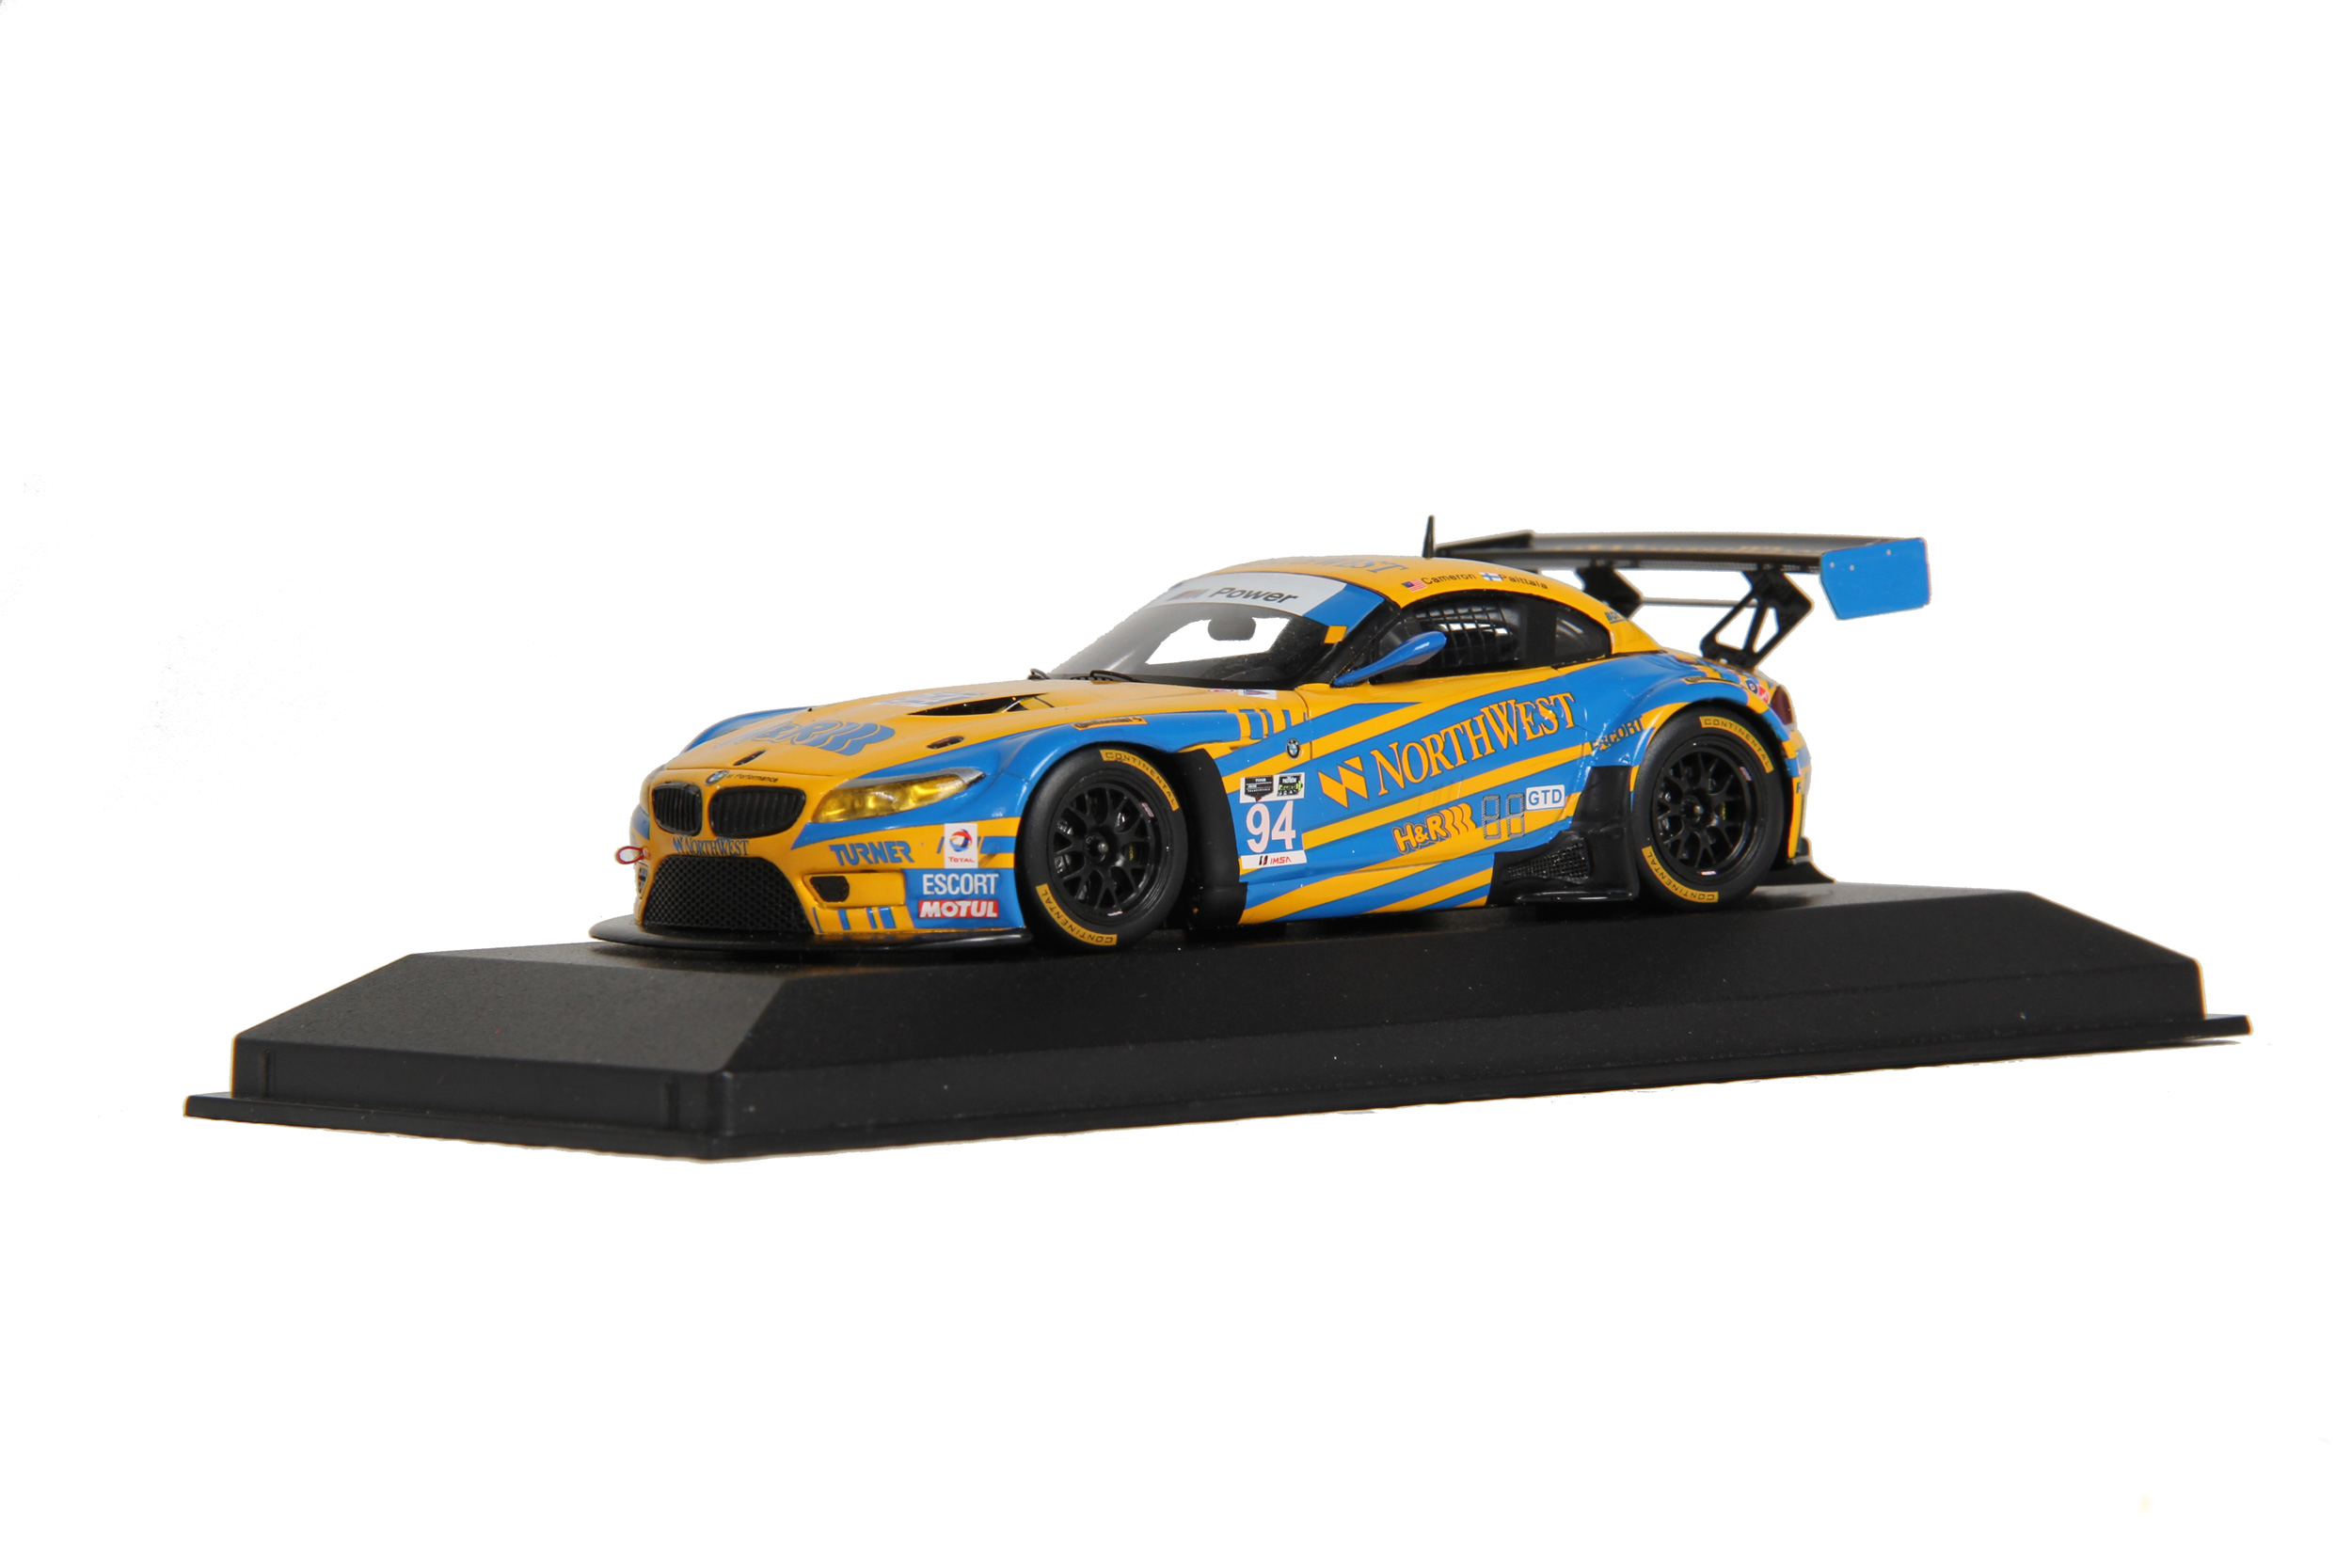 Turner No. 94 Z4 GTD Minichamp